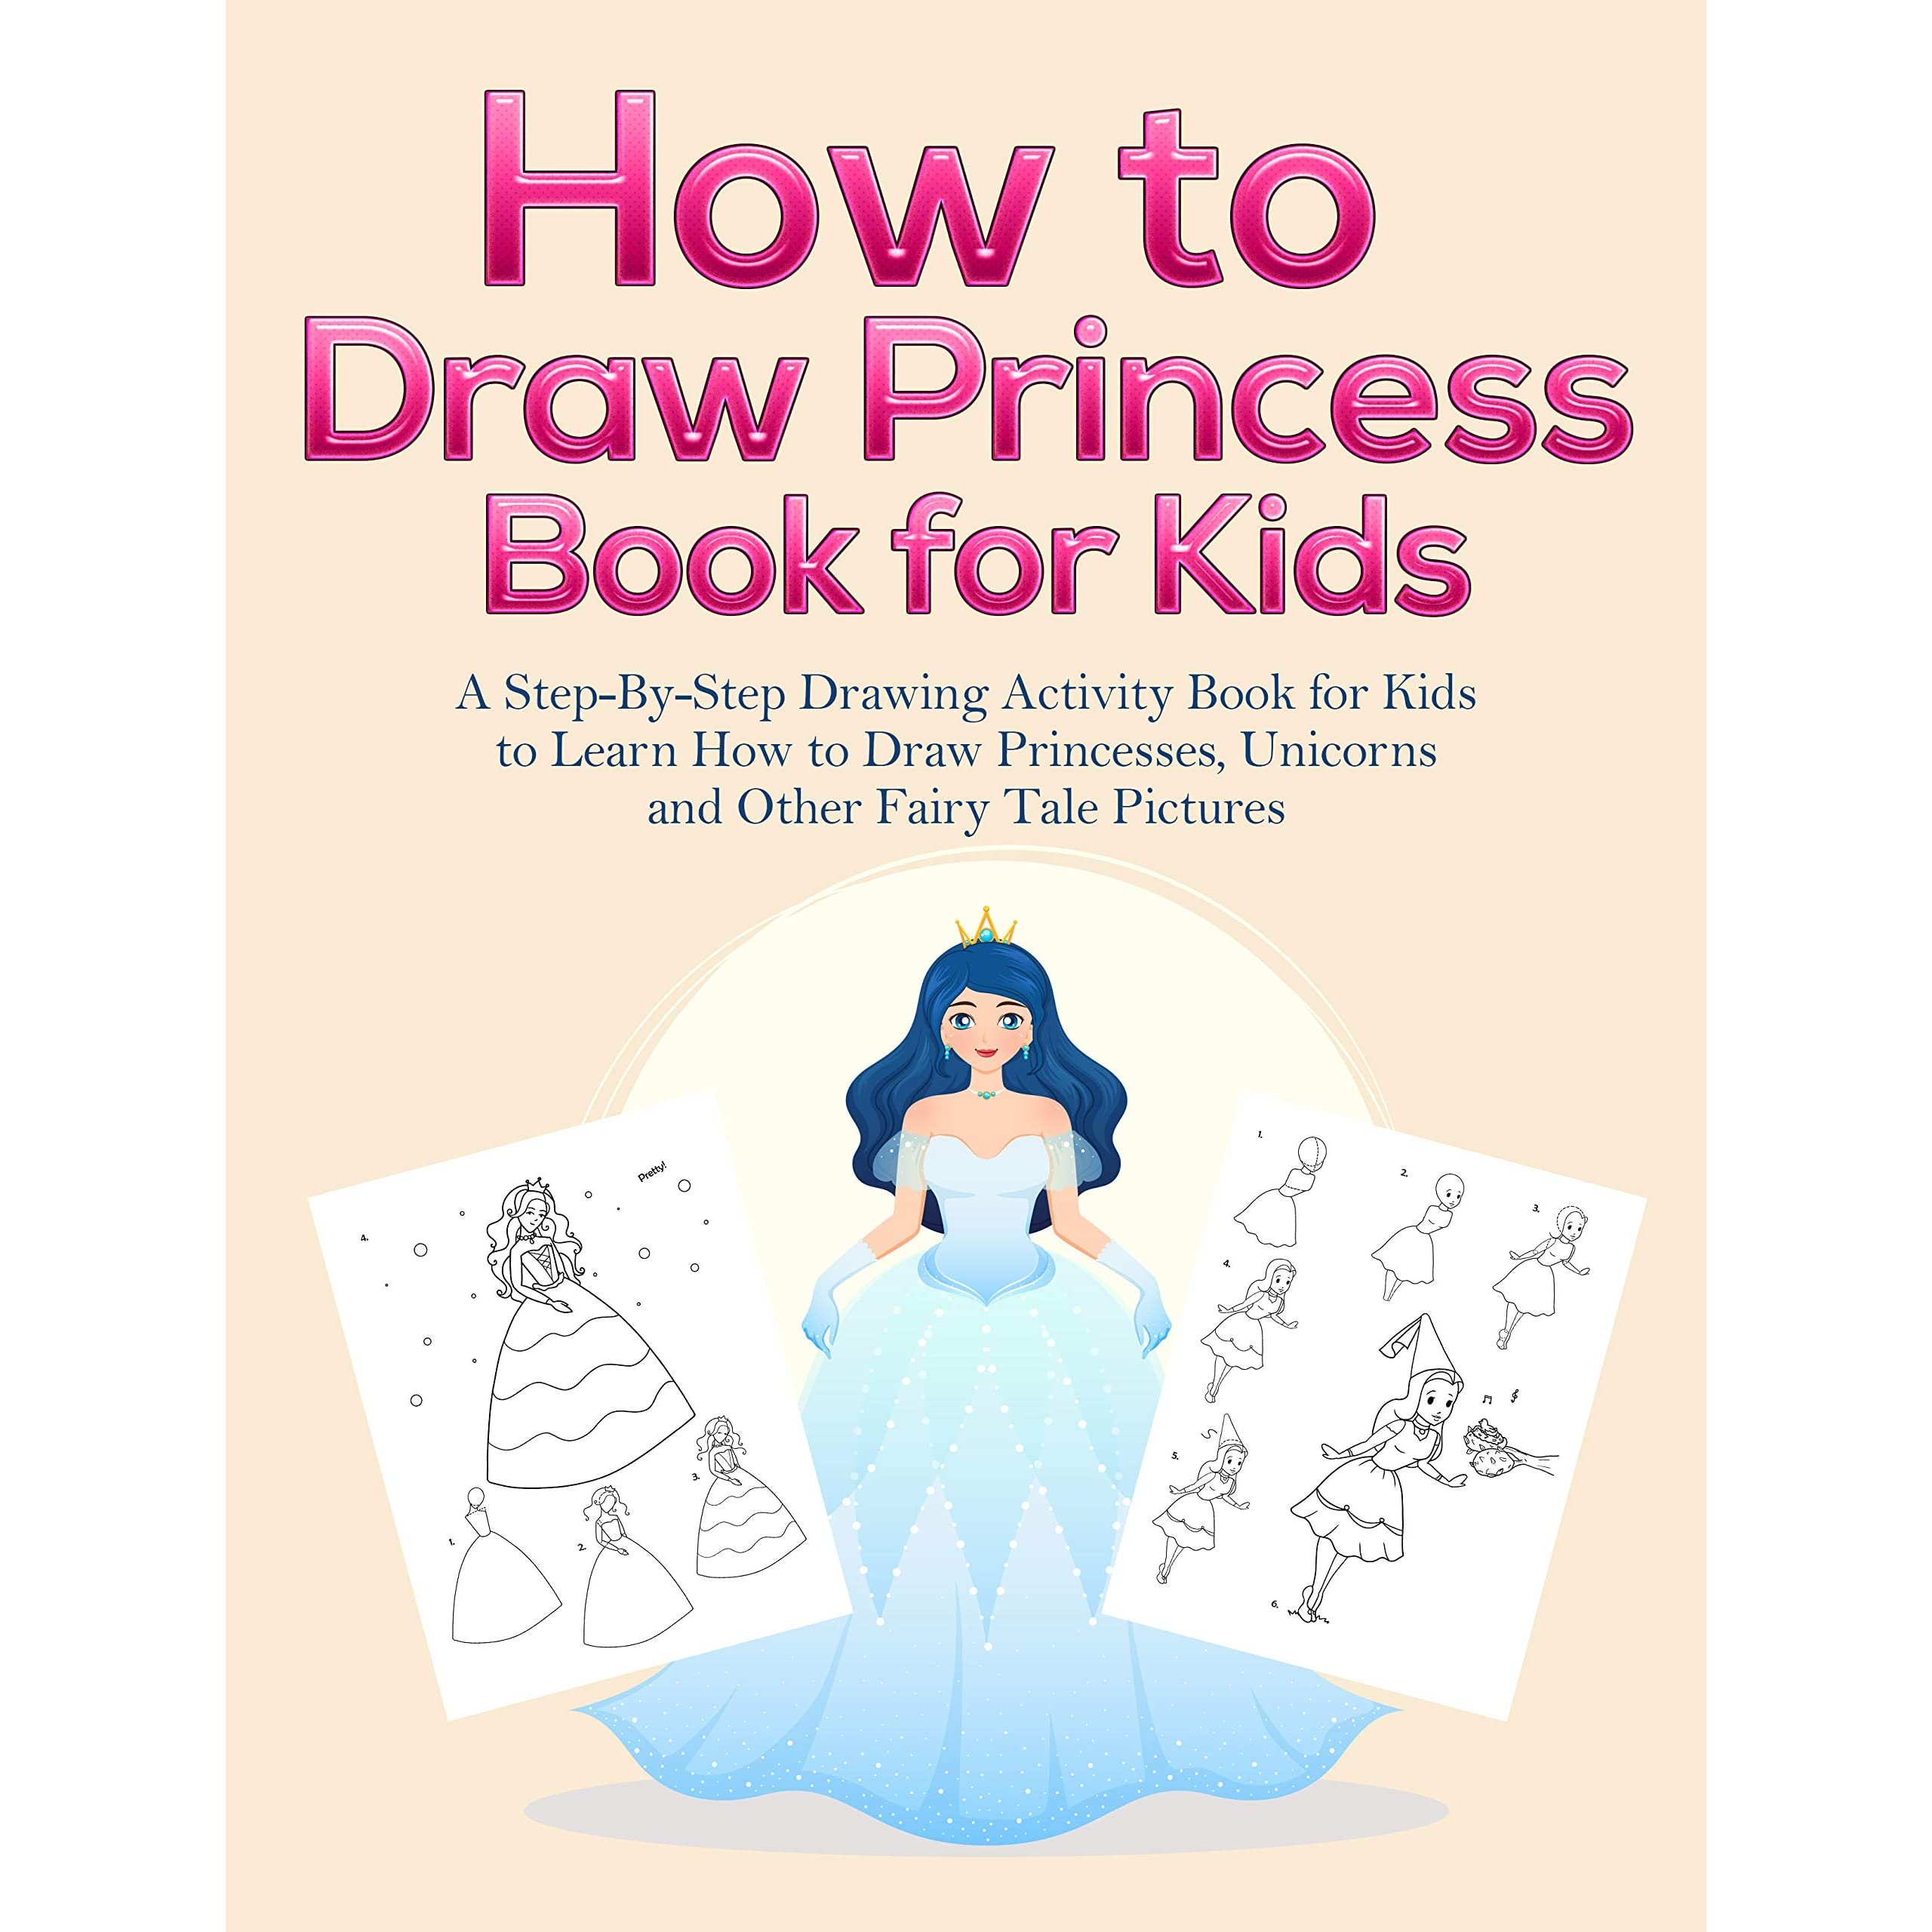 how to draw princess books for kids a step by step drawing activity book for kids to learn how to draw princesses unicorns and other fairy tale pictures by pineapple activity books how to draw princess books for kids a